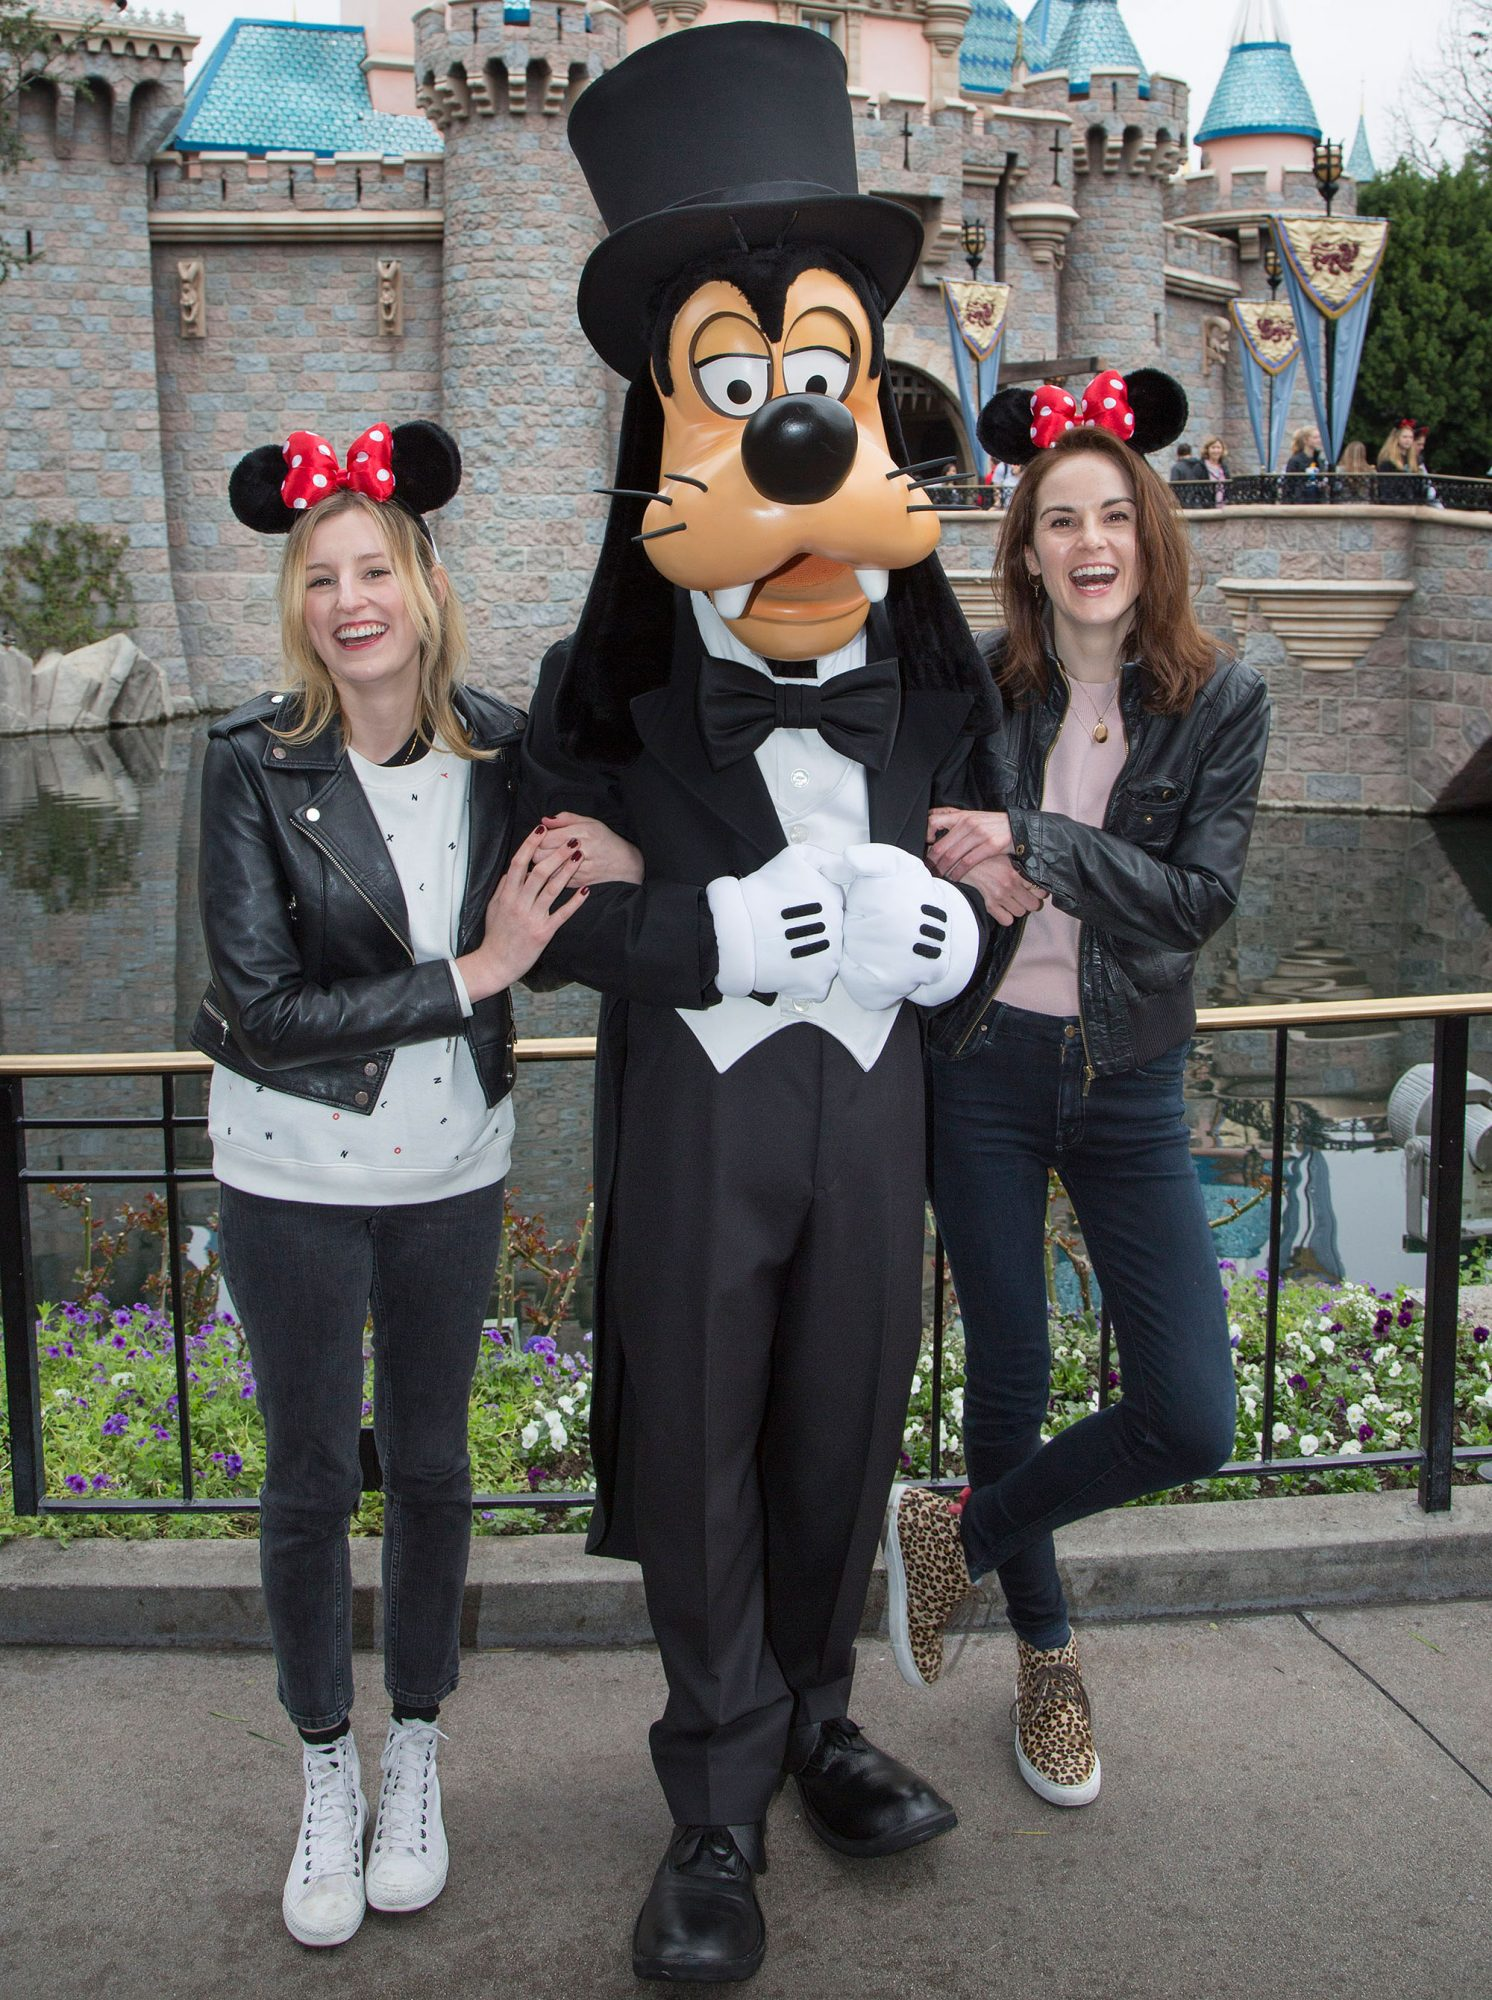 The Ladies of Downton Abbey Get Goofy in Charming Disney World Reunion